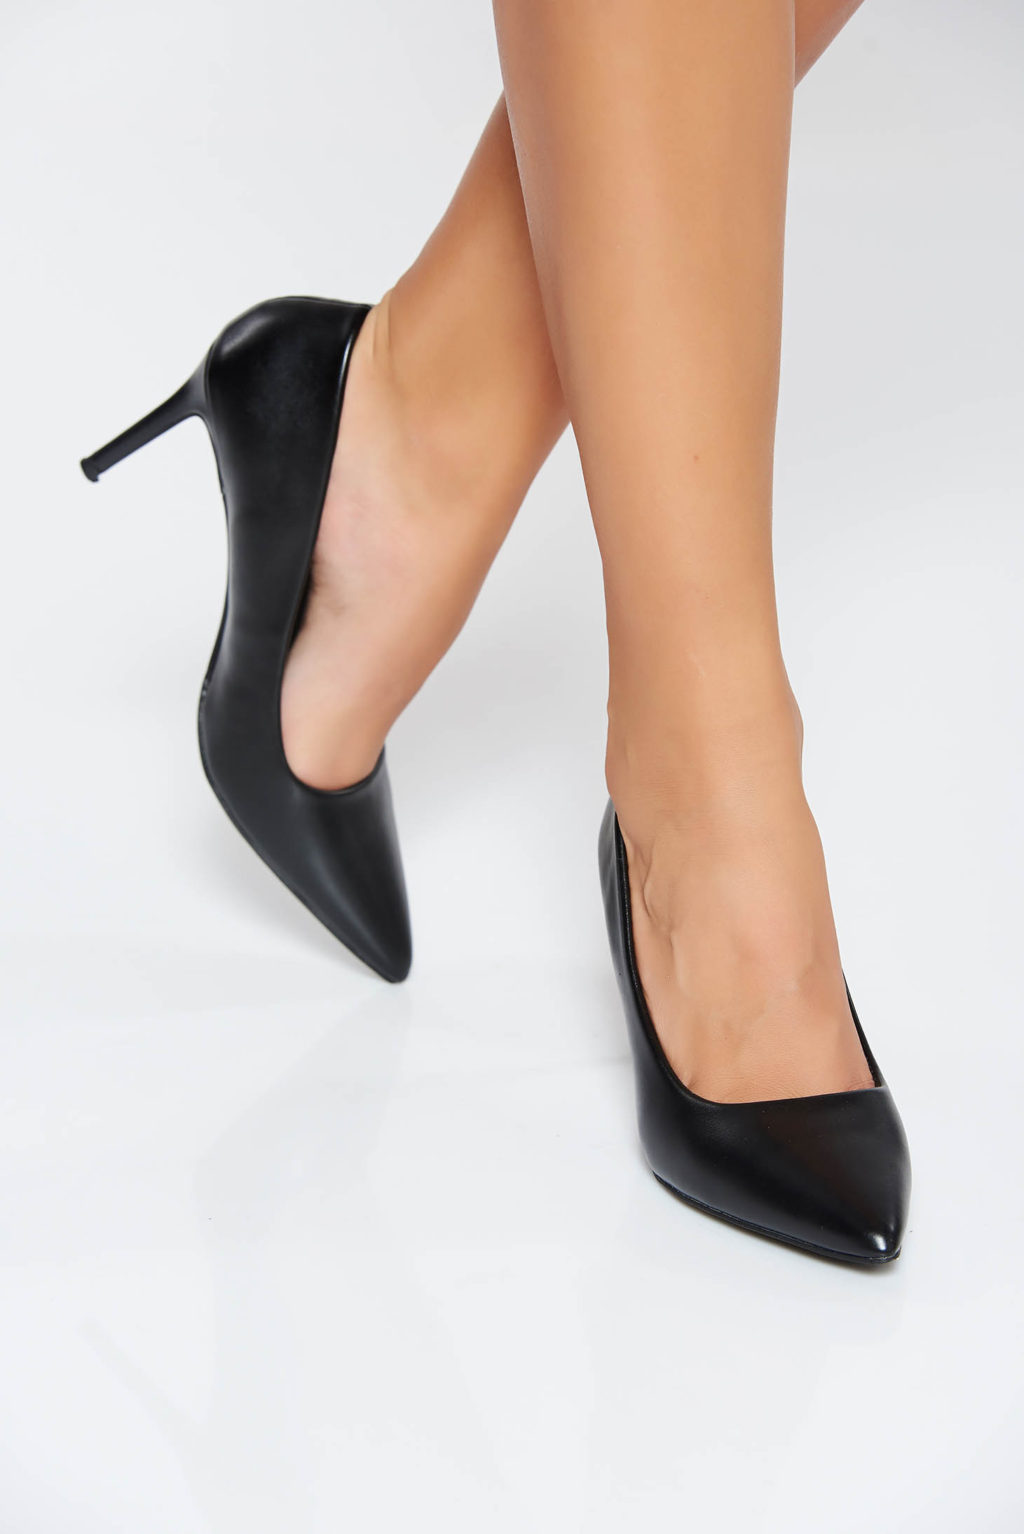 Pointy-Toe-Shoes-1024x1534 Top 10 Outdated Fashion & Clothing Trends to Avoid in 2020